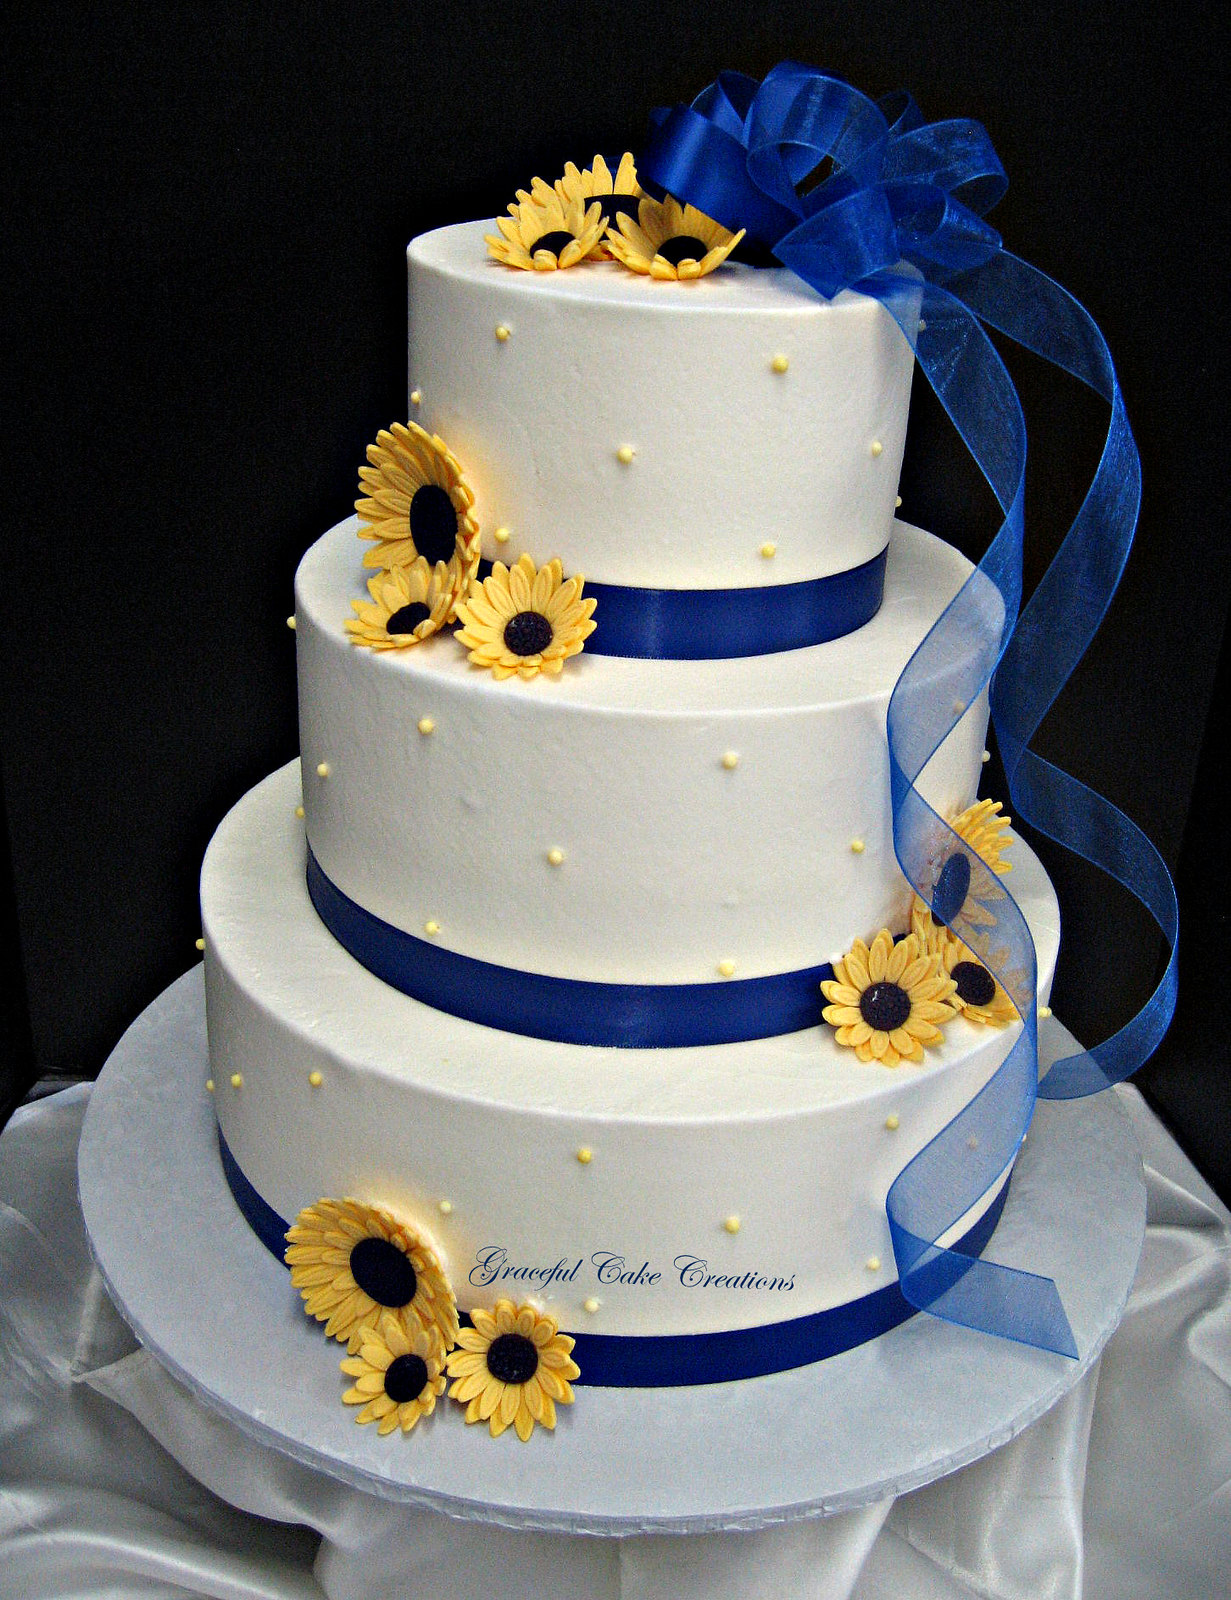 Elegant White Buttercream Wedding Cake with Royal Blue